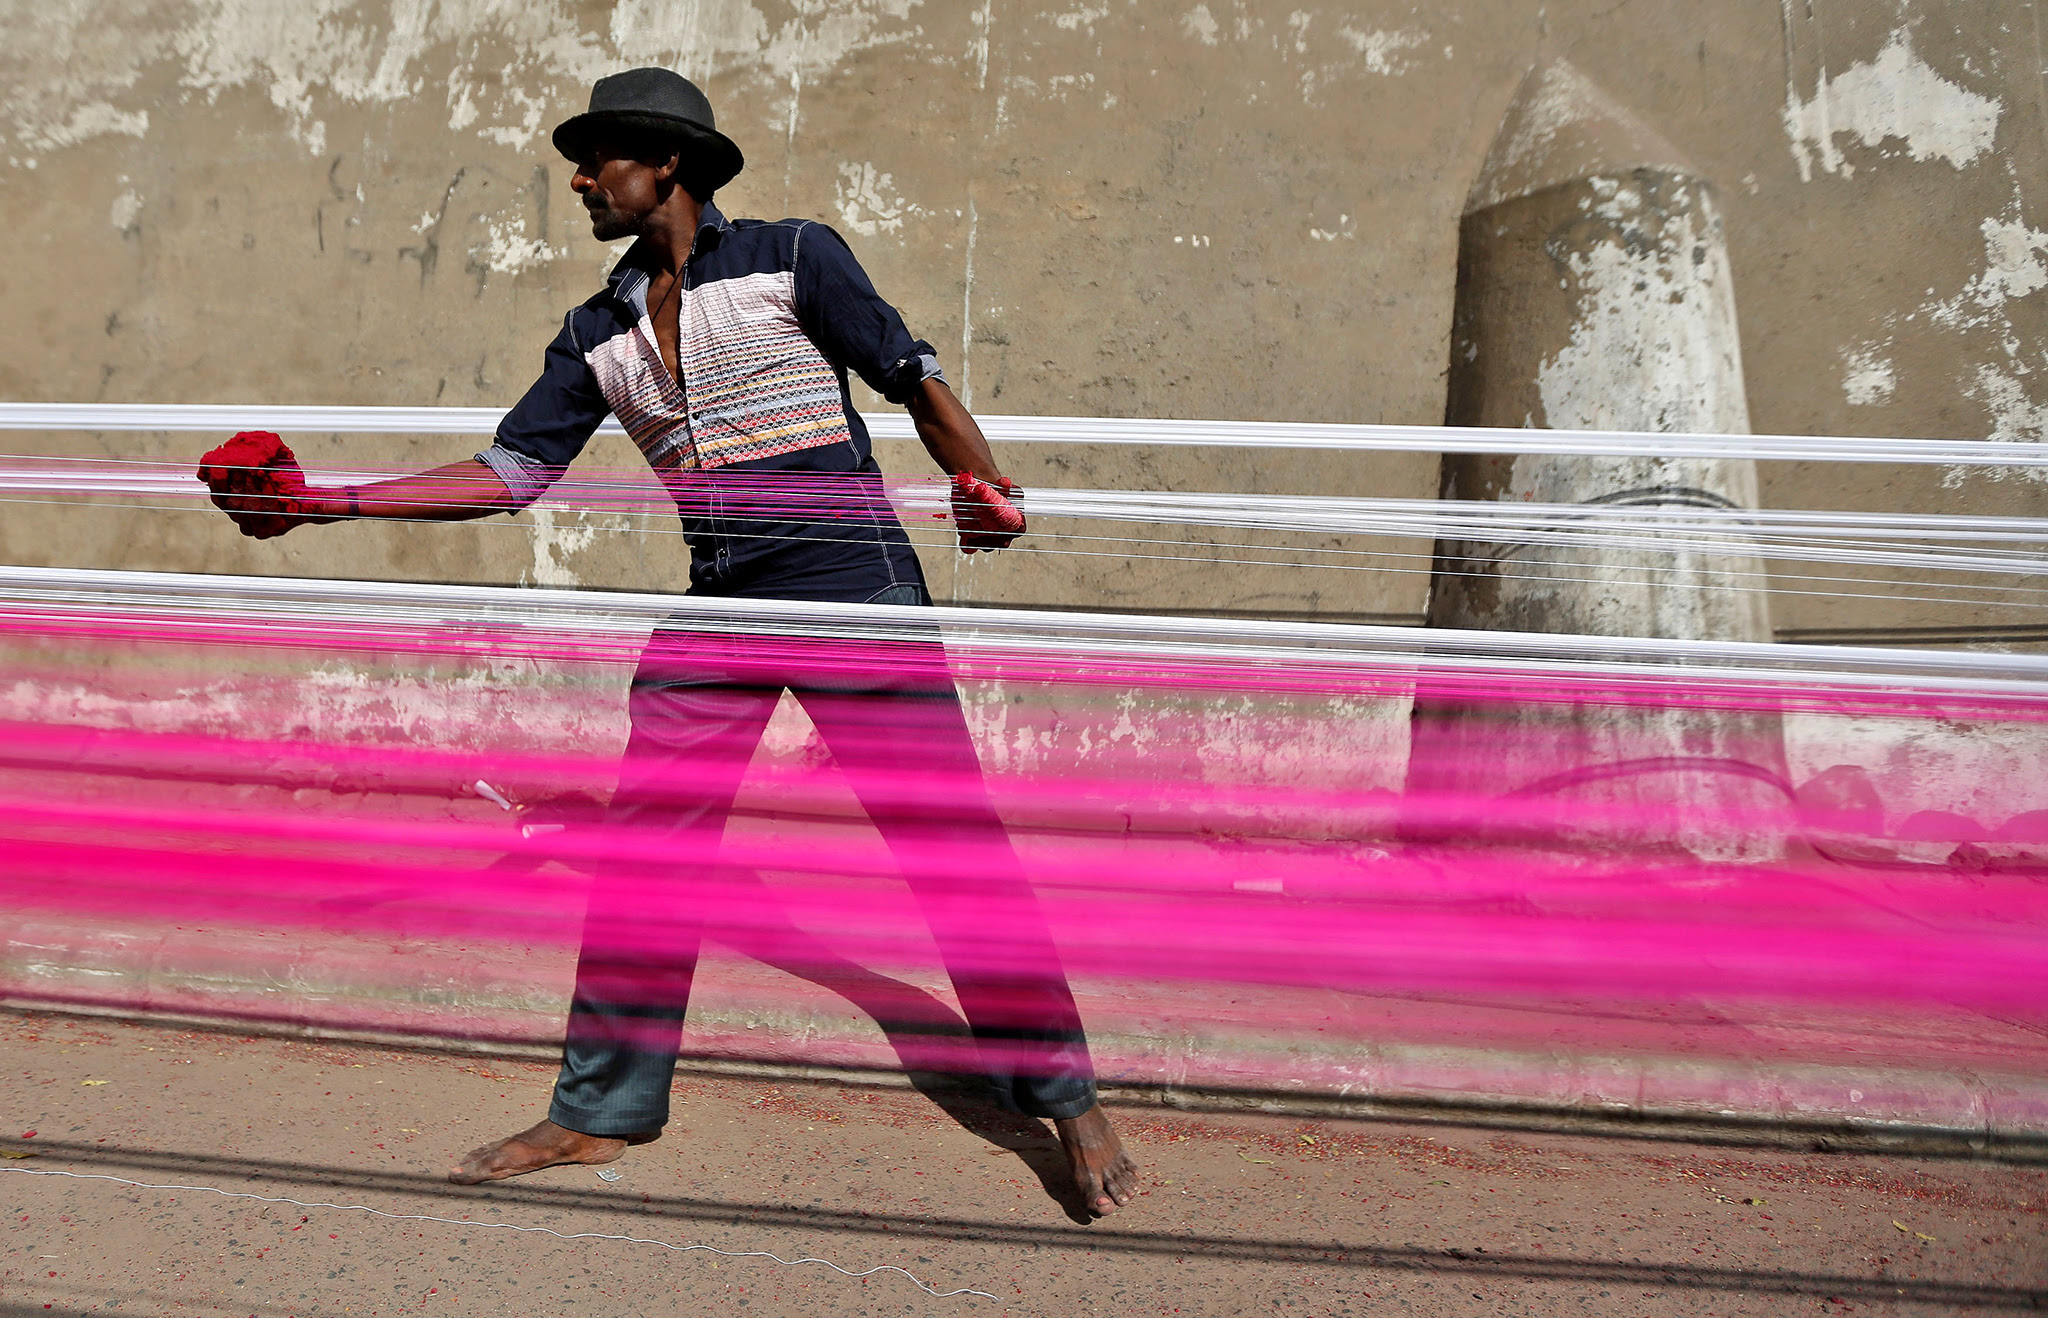 A worker applies colour to strings which will be used to fly kites, on a roadside in Ahmedabad, India, December 15, 2016. REUTERS/Amit Dave     TPX IMAGES OF THE DAY